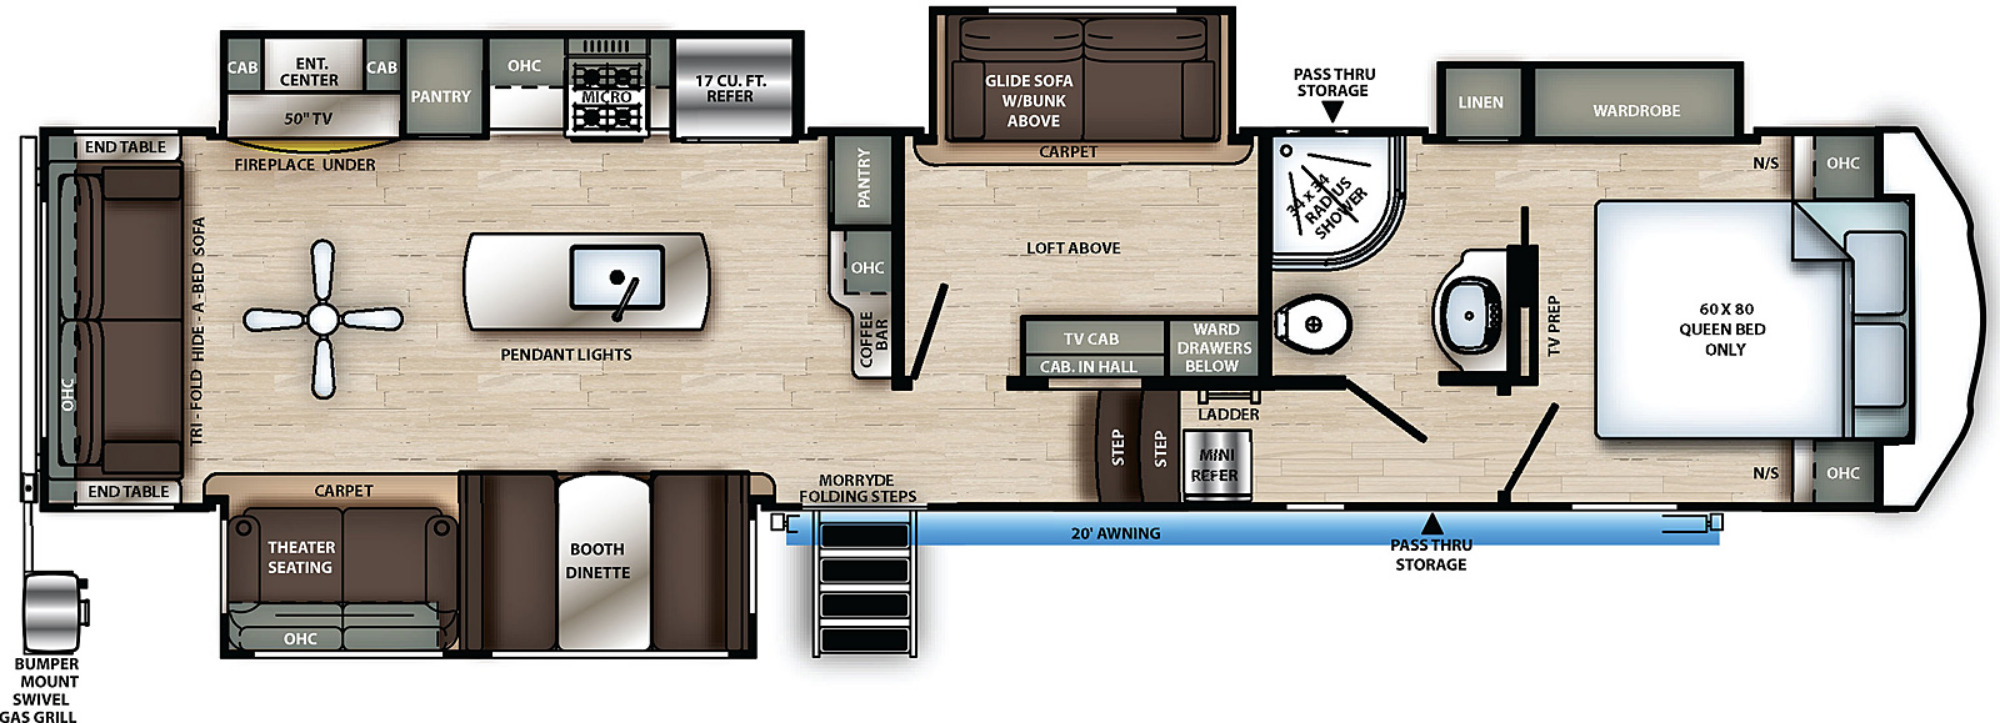 View Floor Plan for 2021 FOREST RIVER SIERRA C-CLASS 3660MB